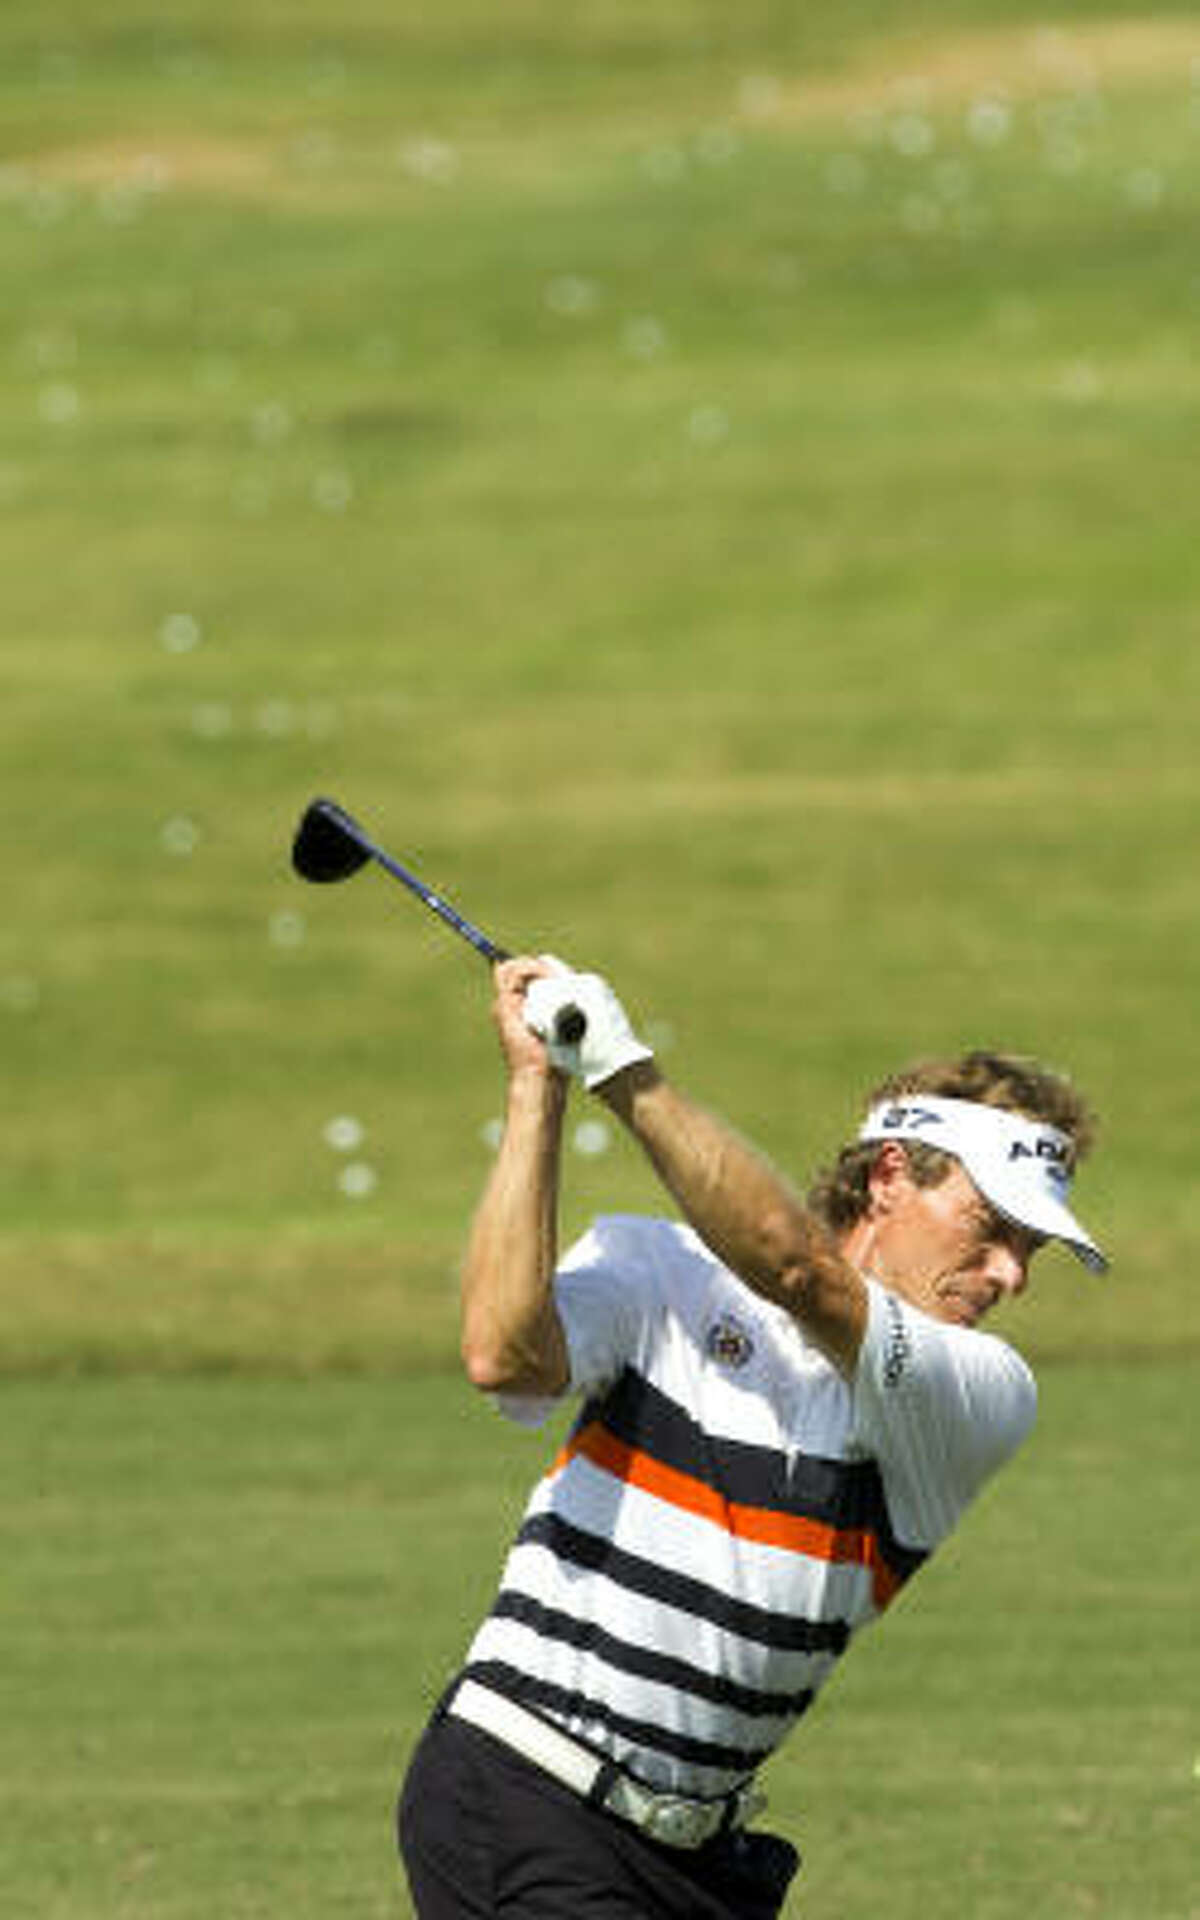 The only two-time winner in the history of the Classic, Bernhard Langer arrived at The Woodlands with a rather comfortable lead in the Champions Tour's Charles Schwab Cup points standings.